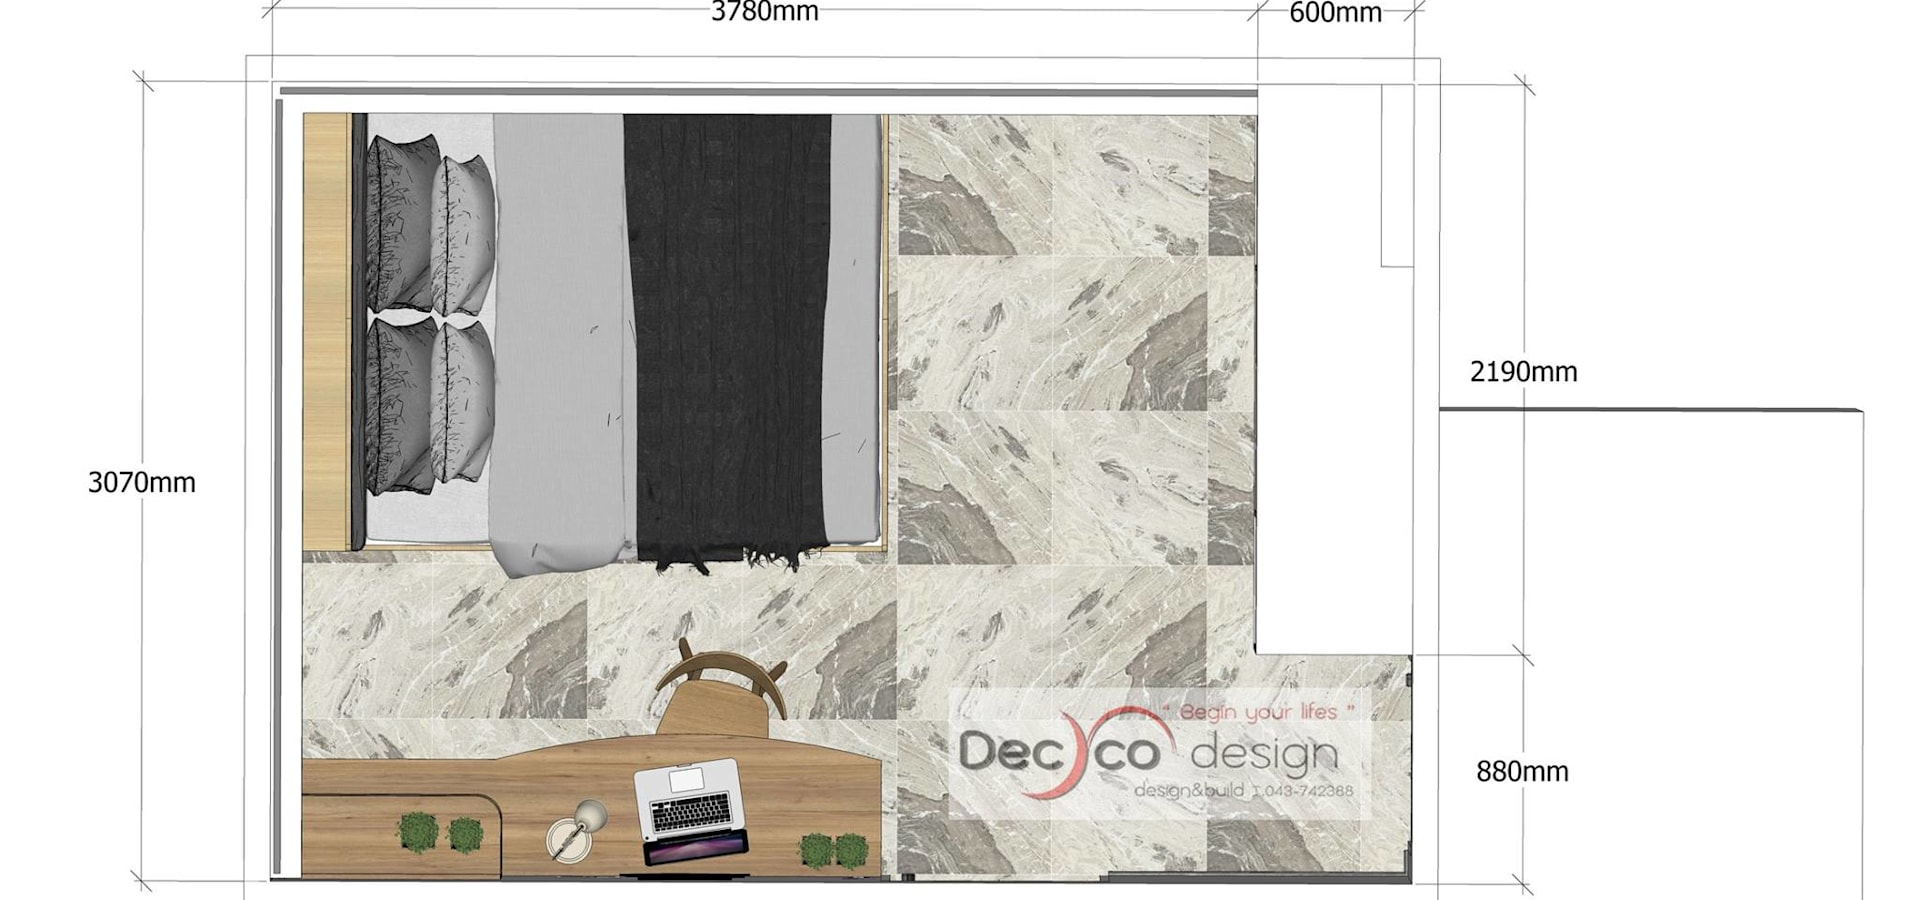 Deccor Design